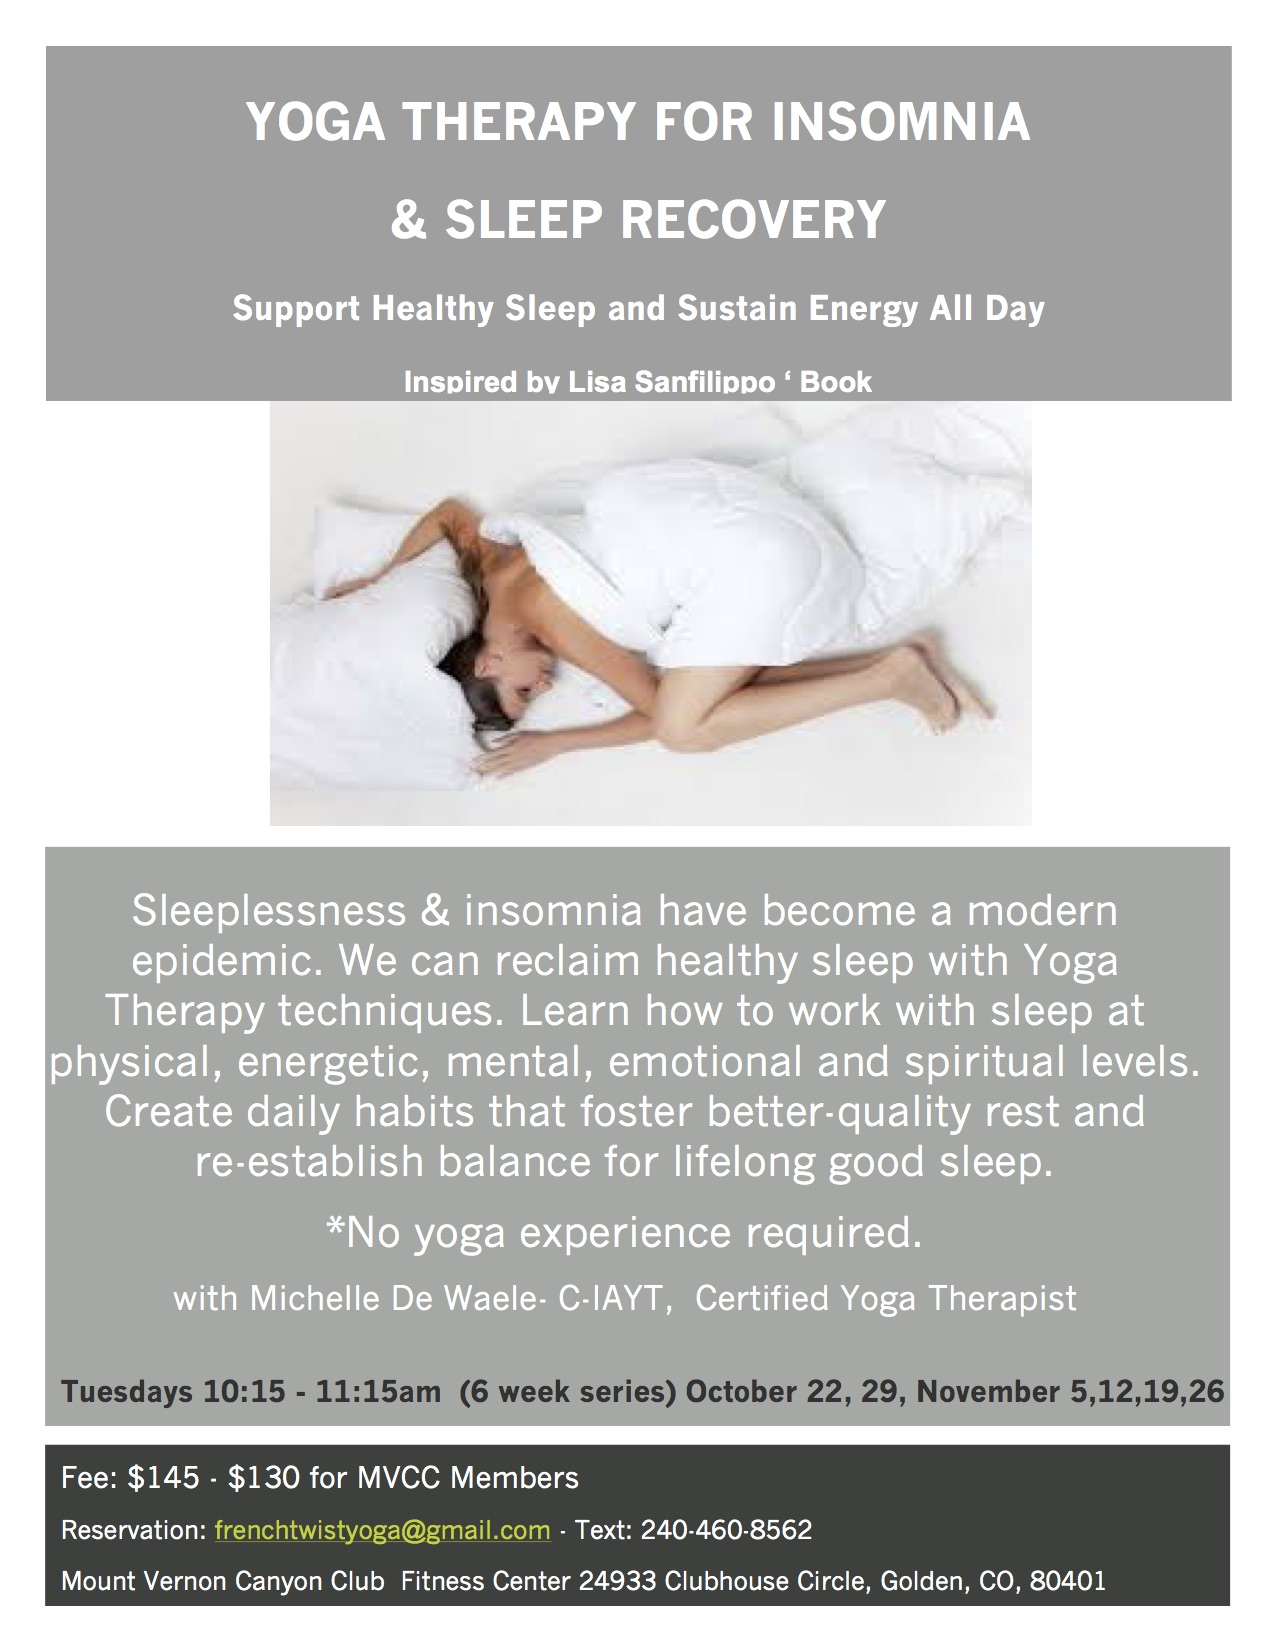 Yoga Therapy for Insomnia & Sleep Recovery